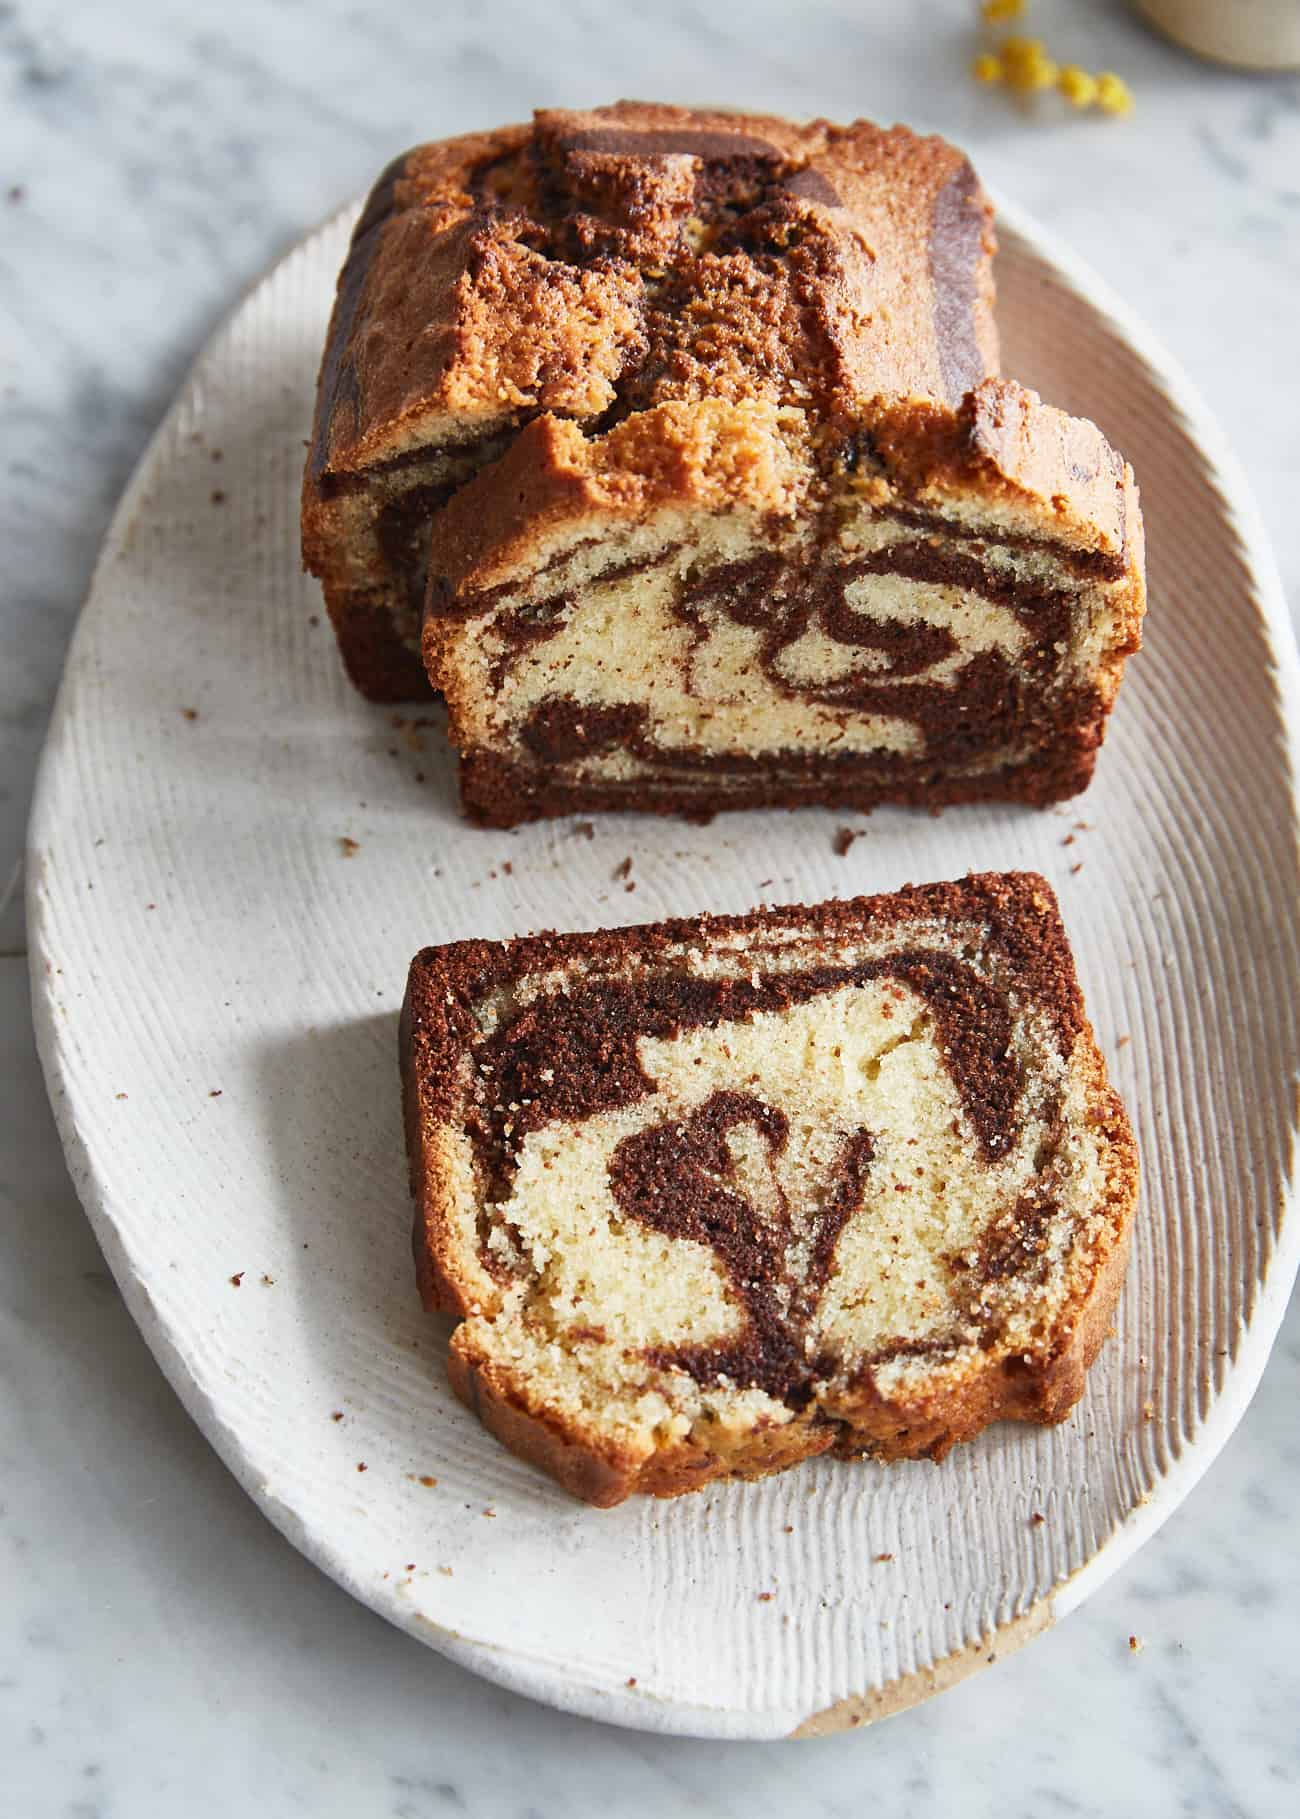 marble cake sliced on a plate